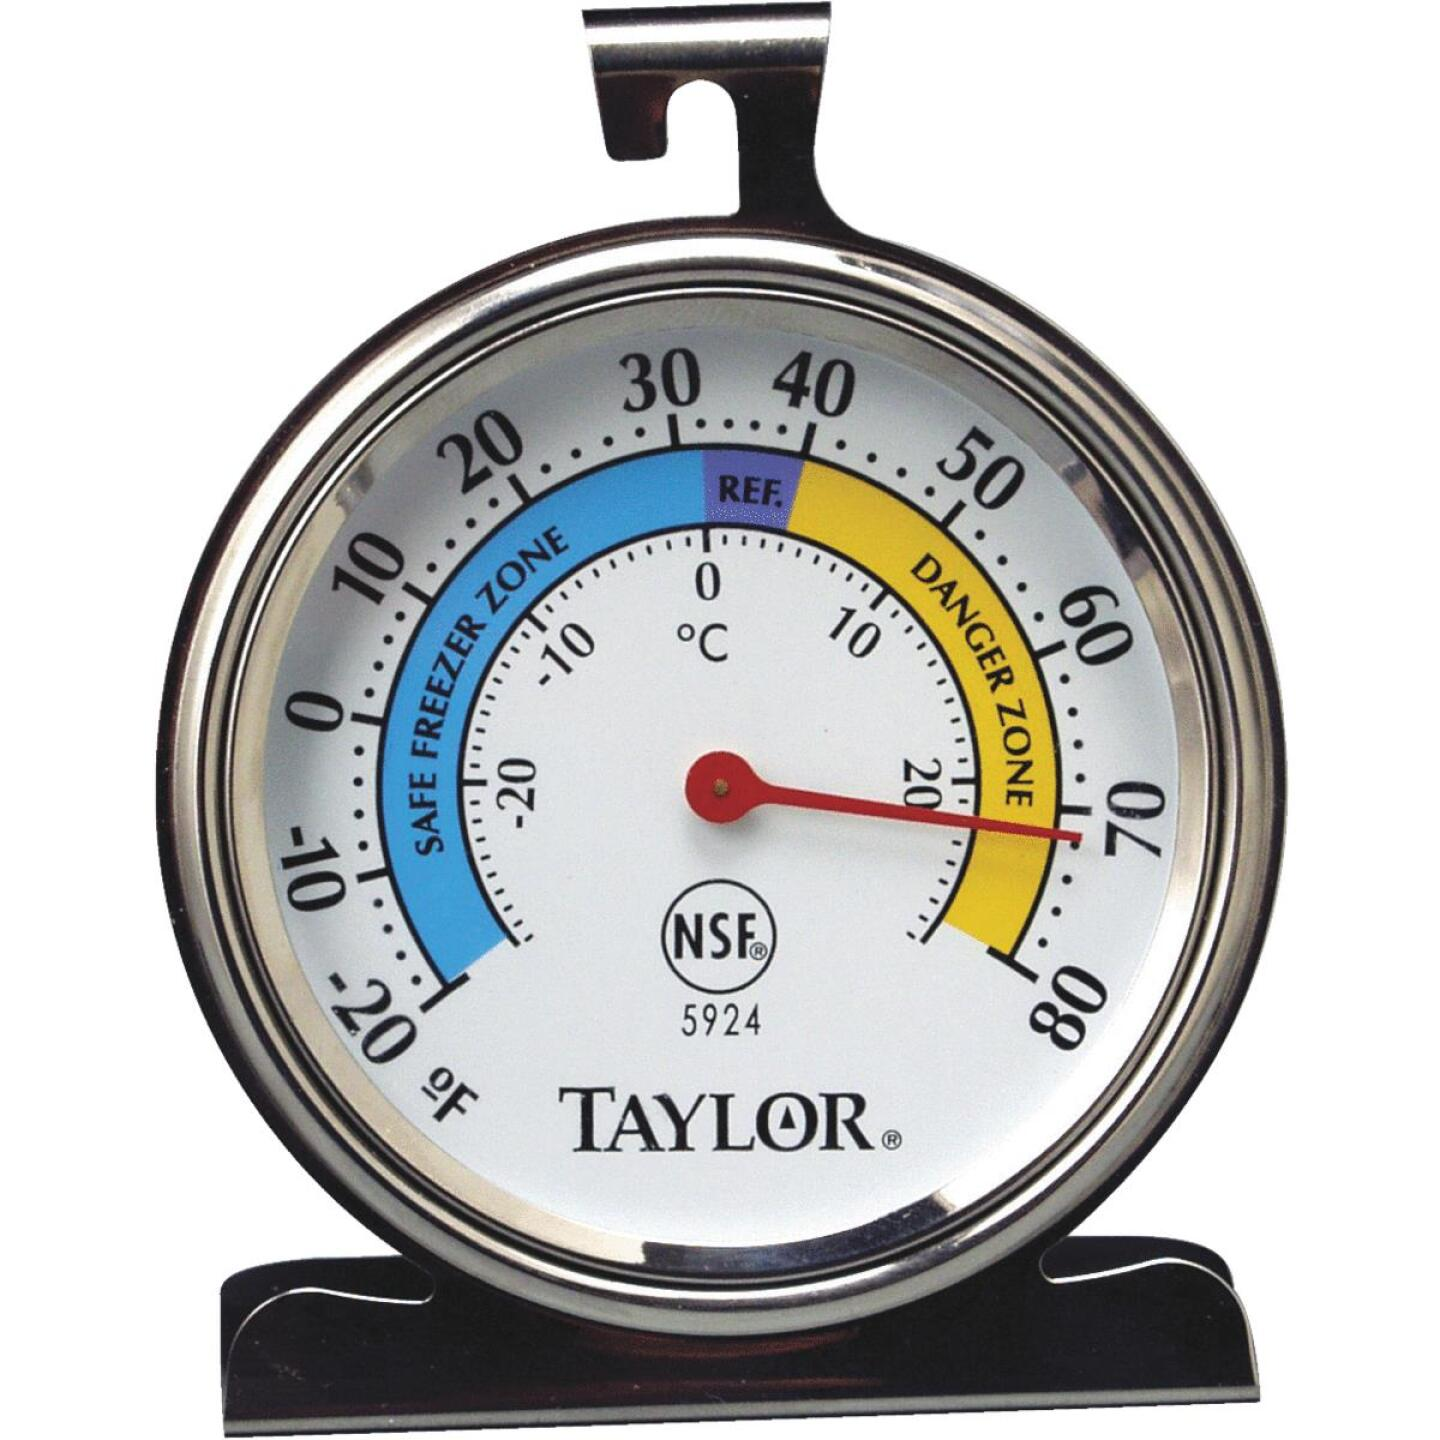 Taylor Classic Freezer Or Refrigerator Kitchen Thermometer Image 1